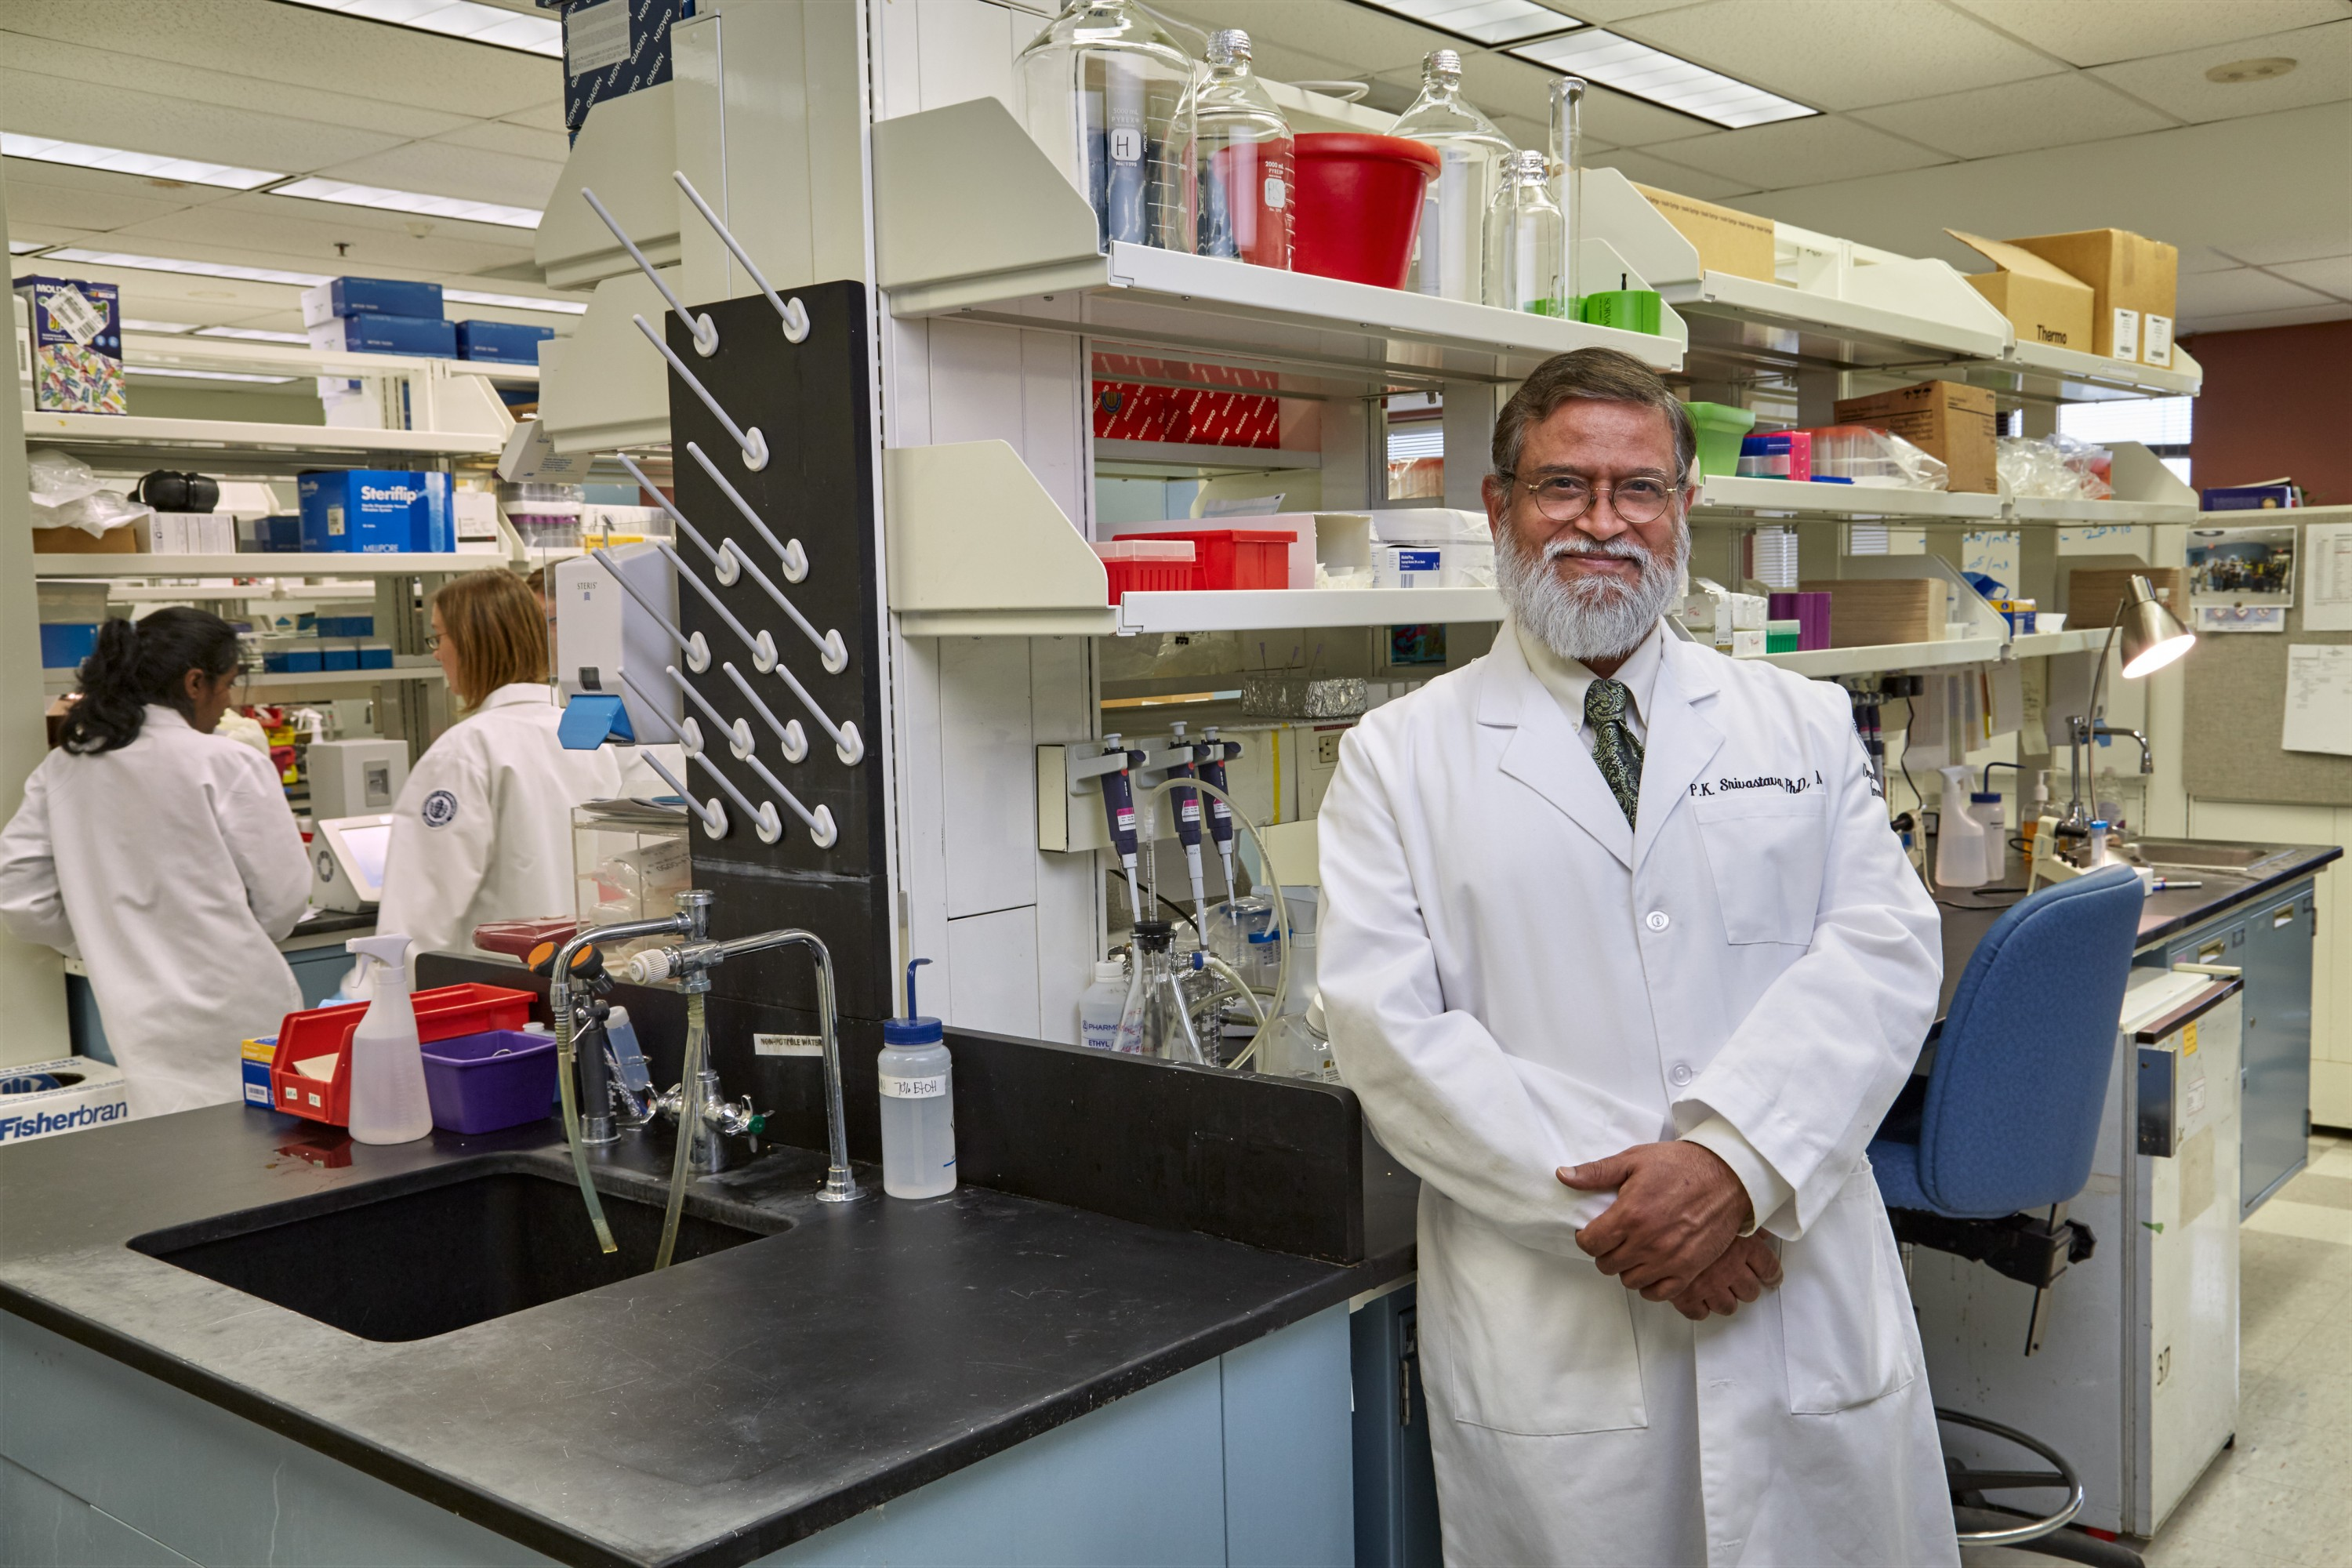 uconn honors heroes in fight against cancer uconn today dr pramod srivastava ovarian cancer researcher at uconn health on oct 1